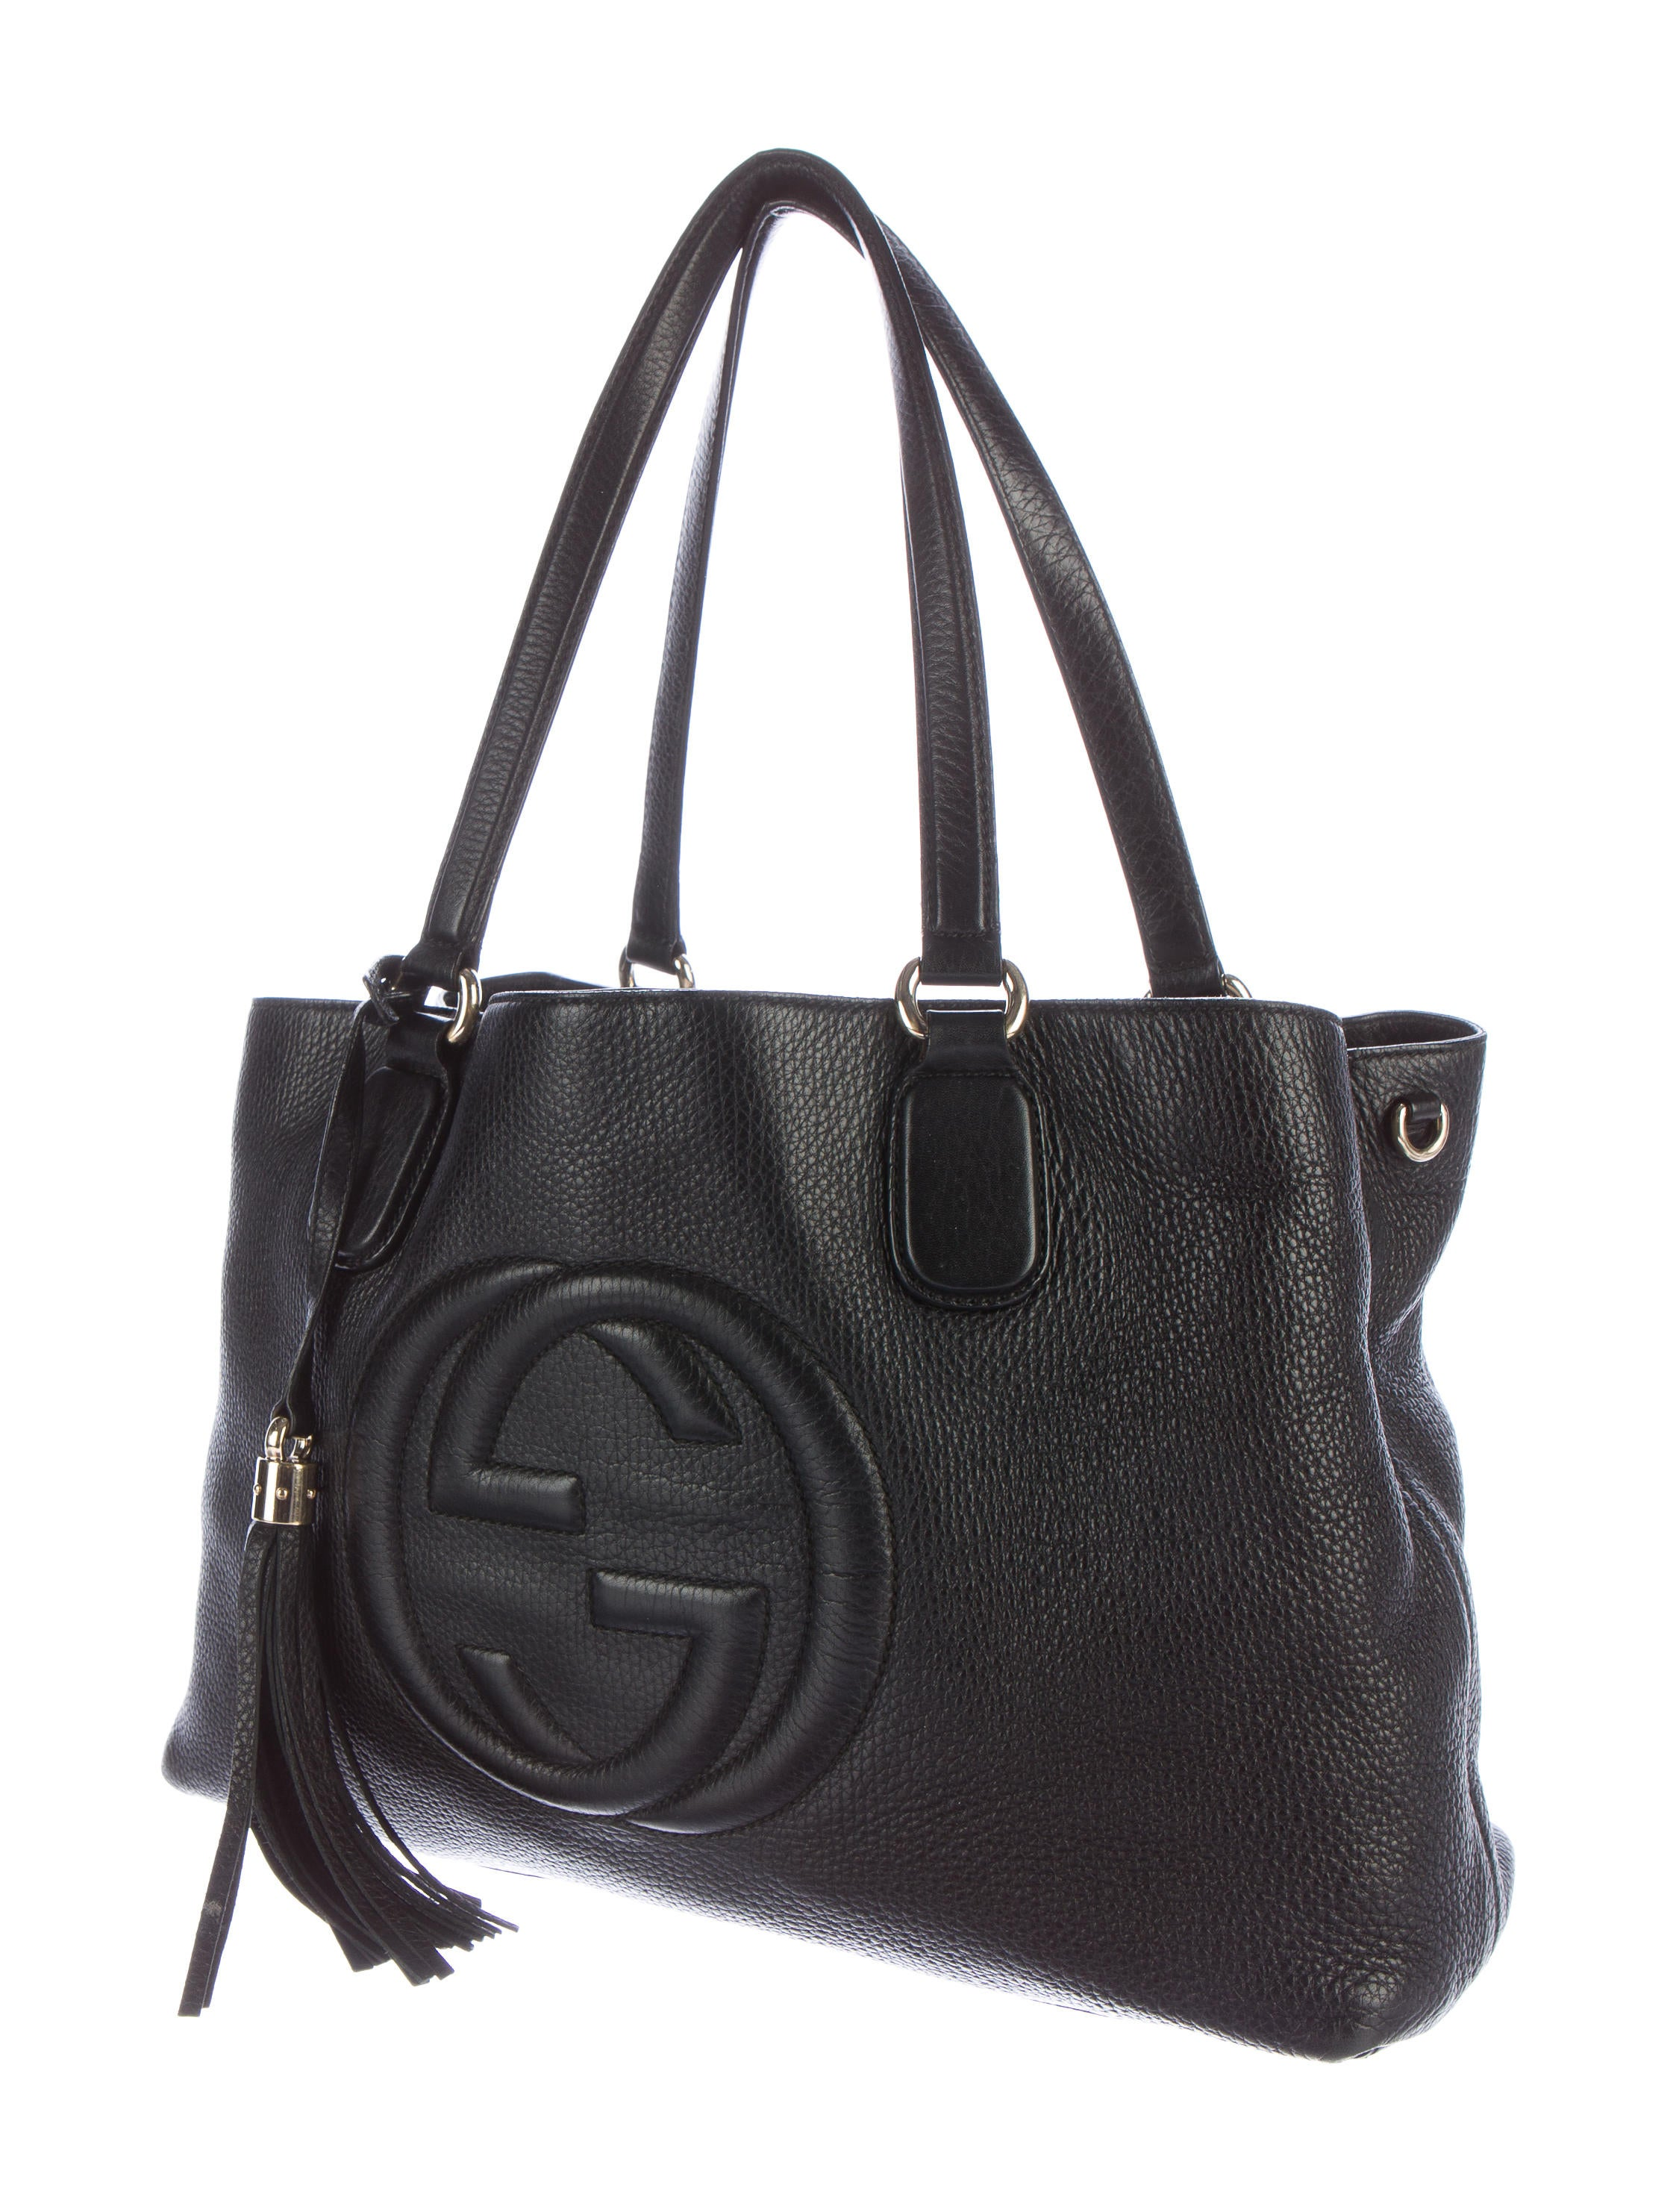 b096e0e8f983 Gucci Bags For Work | Stanford Center for Opportunity Policy in ...